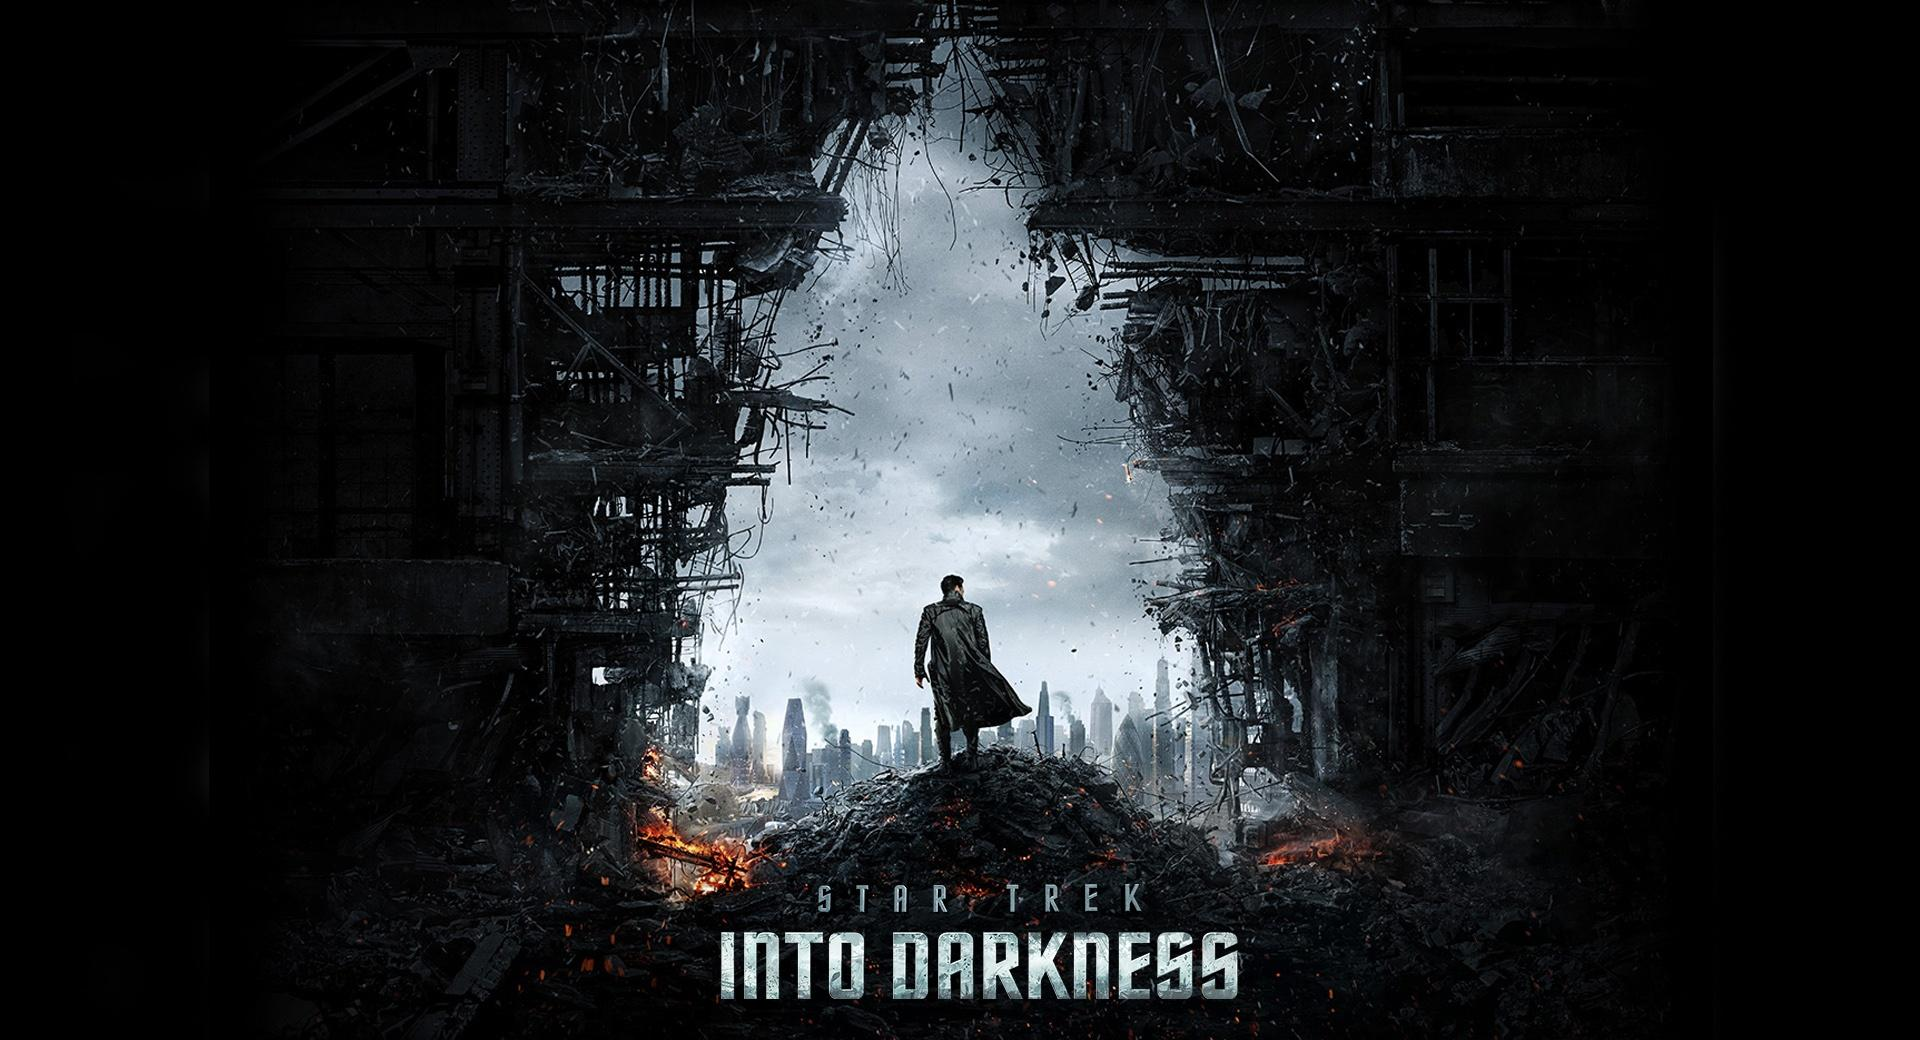 Star Trek Into Darkness 2013 Movie wallpapers HD quality